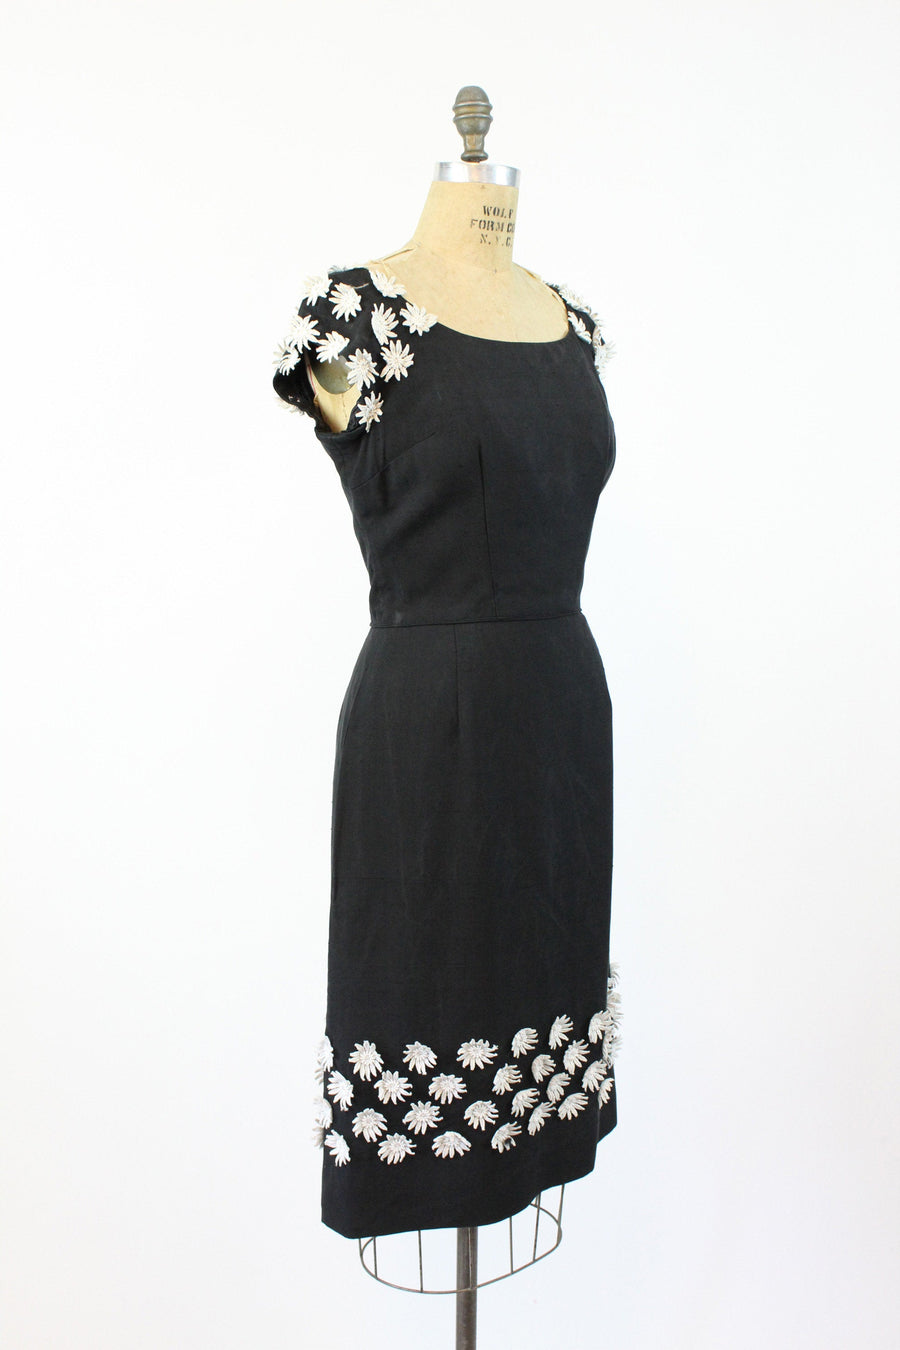 1950s daisy applique dress small medium | vintage silk wiggle dress | new in